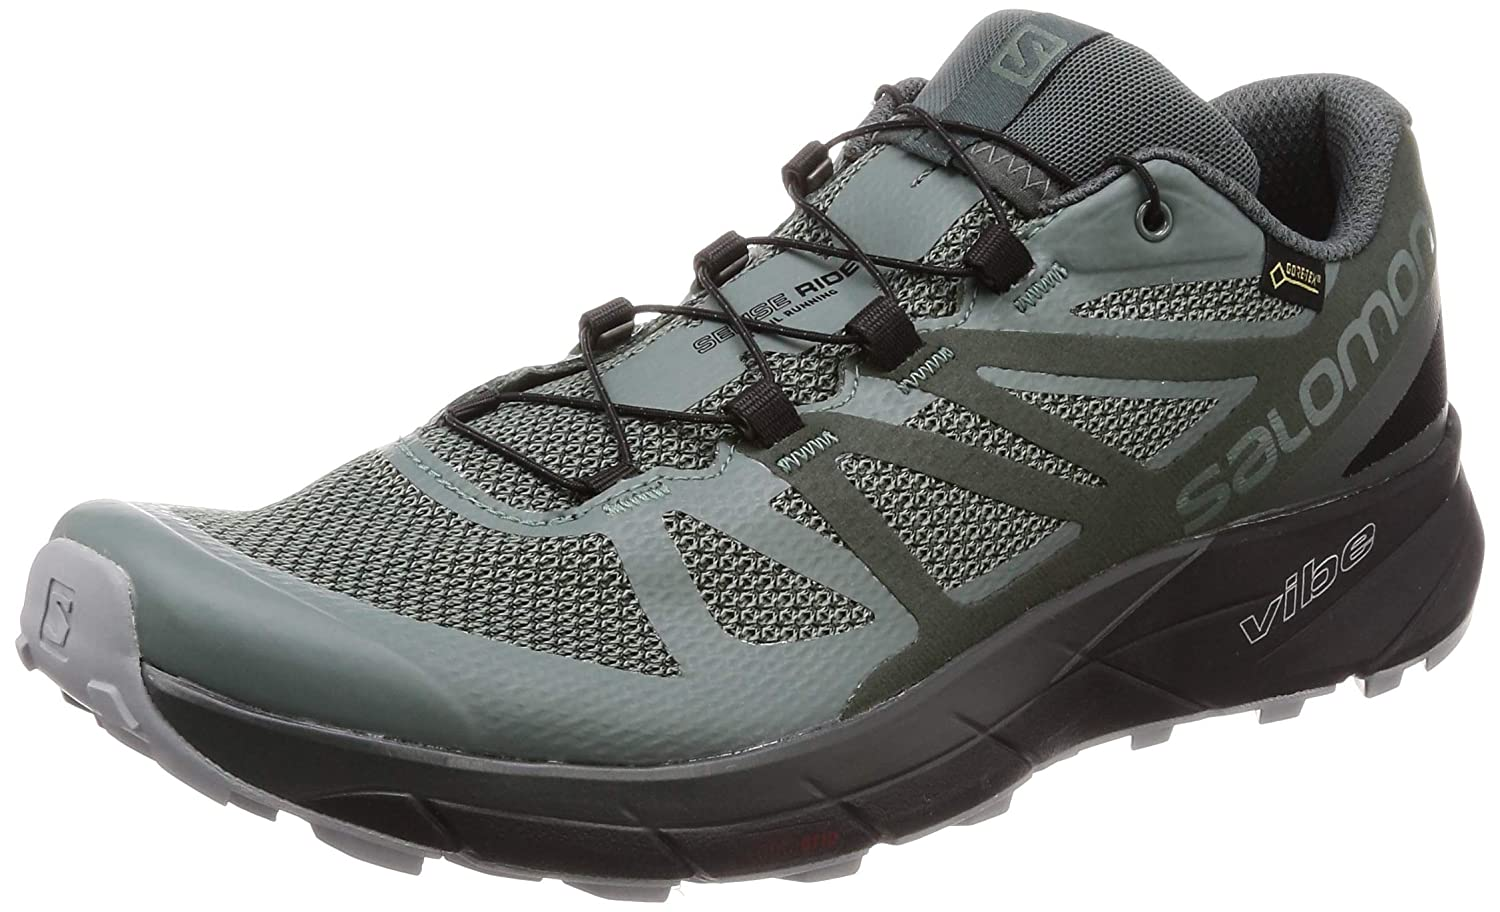 Salomon Men's Sense Ride GTX Invisible Fit Trail Running Shoes